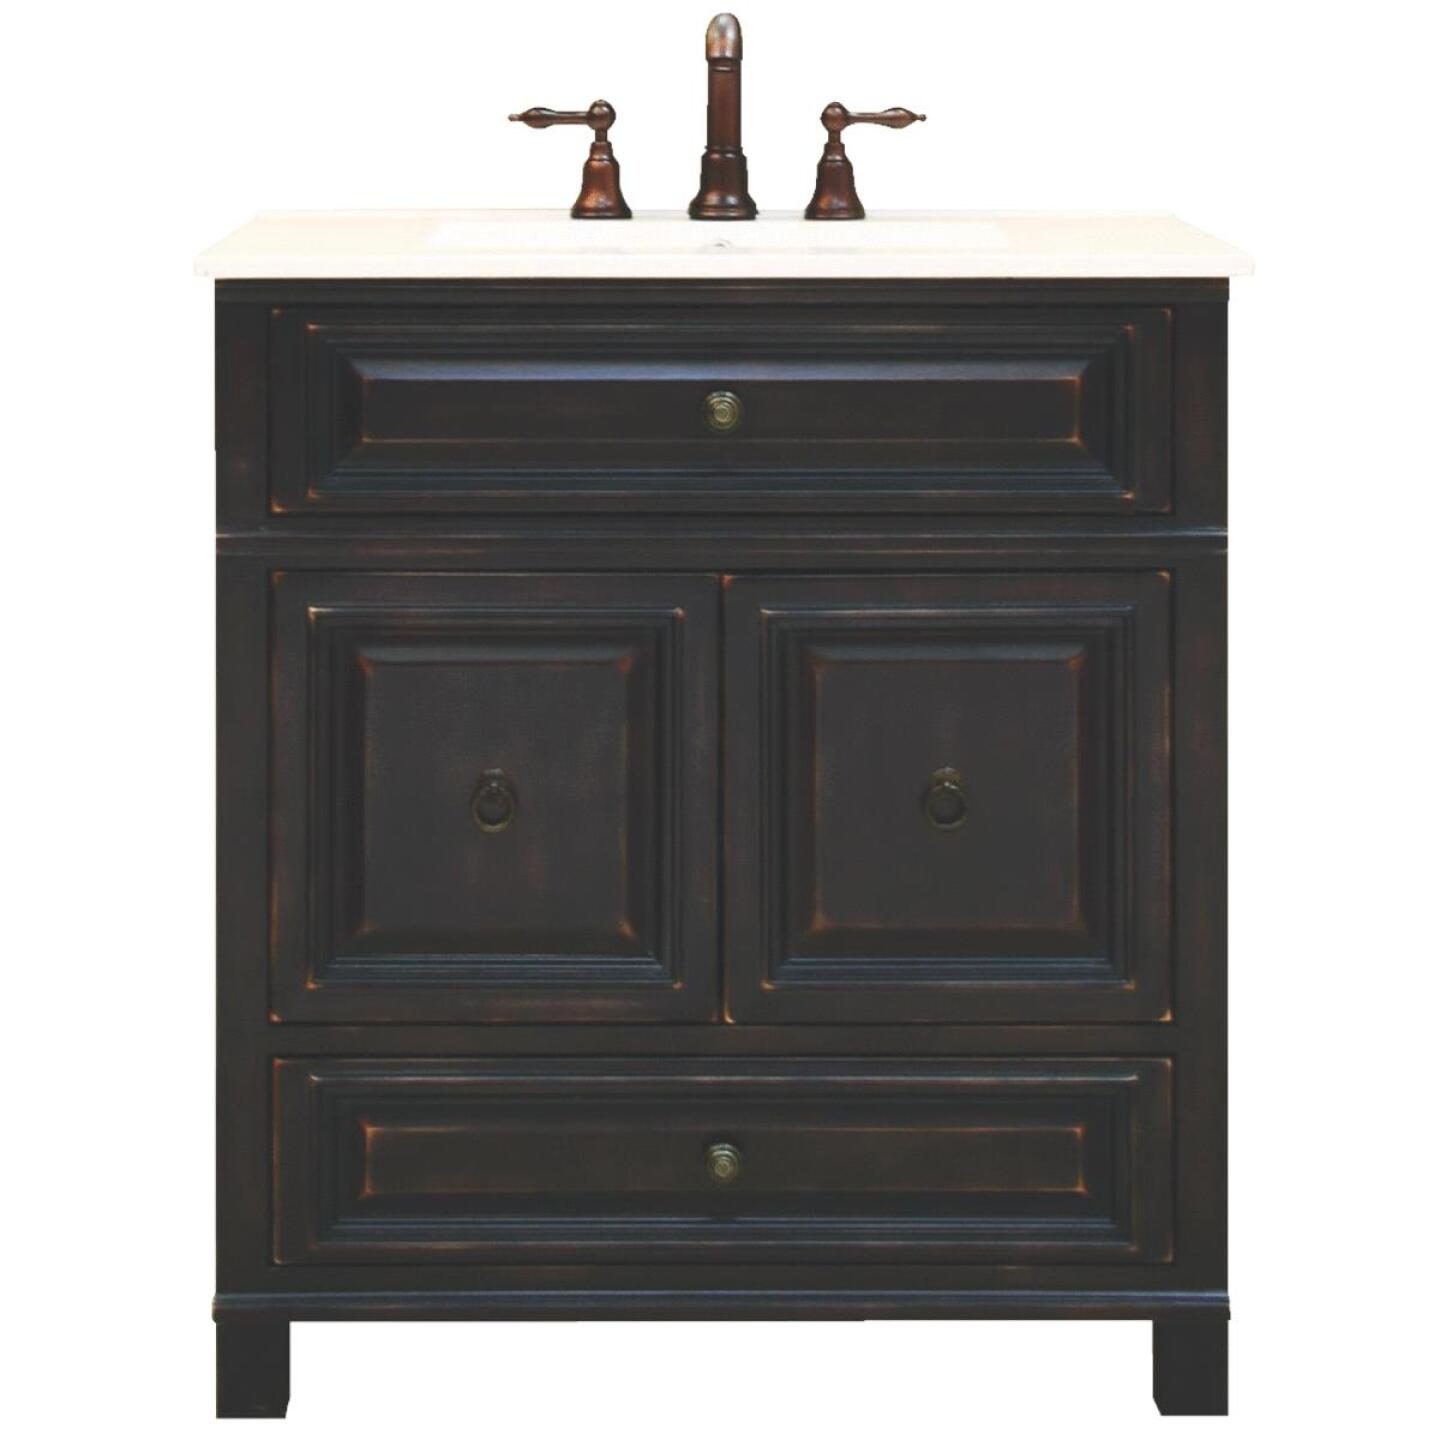 Sunny Wood Barton Hill Black Onyx 30 In. W x 34 In. H x 21 In. D Vanity Base, 2 Door/1 Drawer Image 5